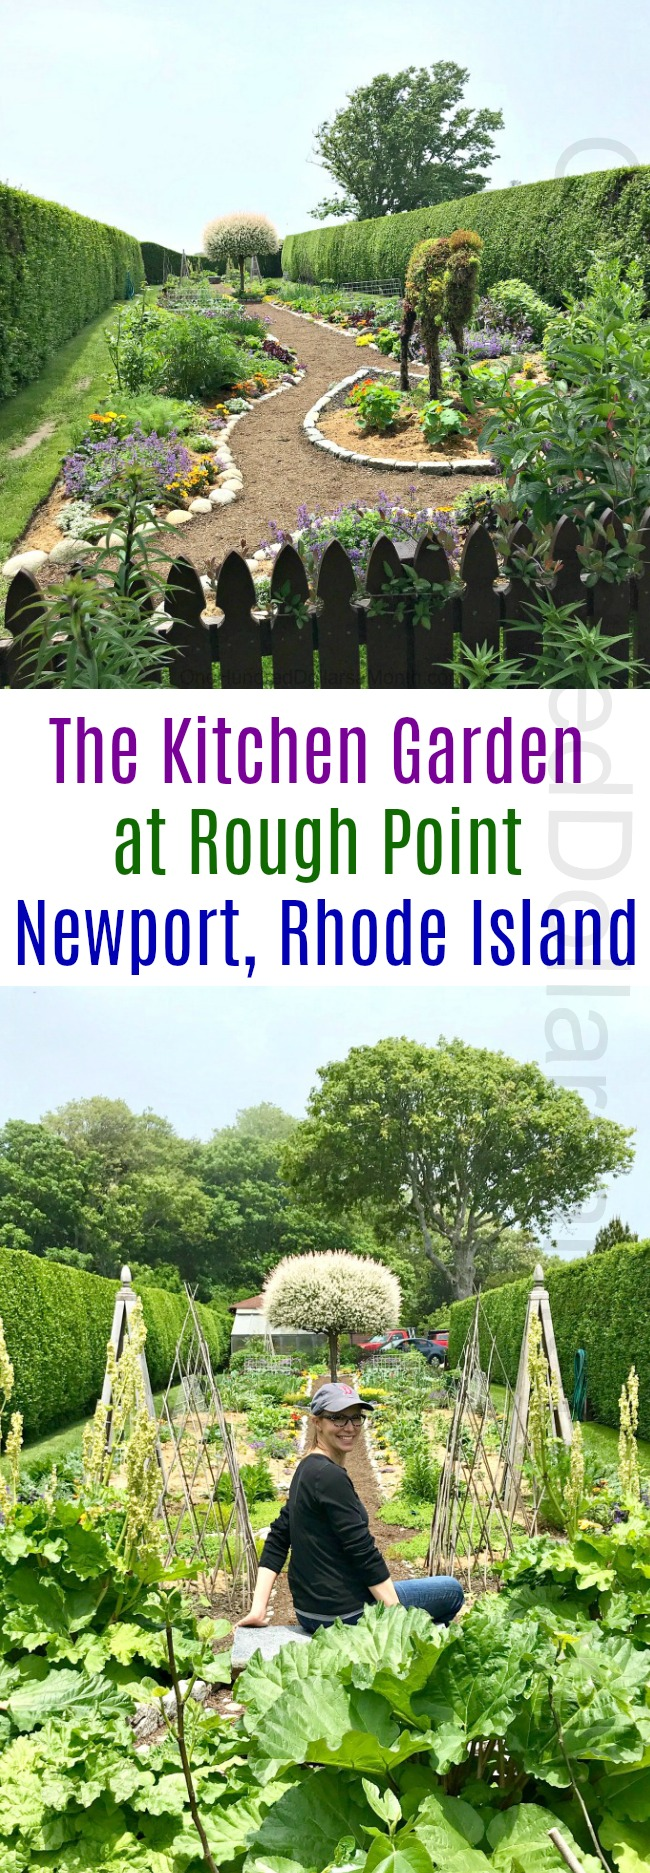 The Kitchen Garden at Rough Point ~ Newport, Rhode Island